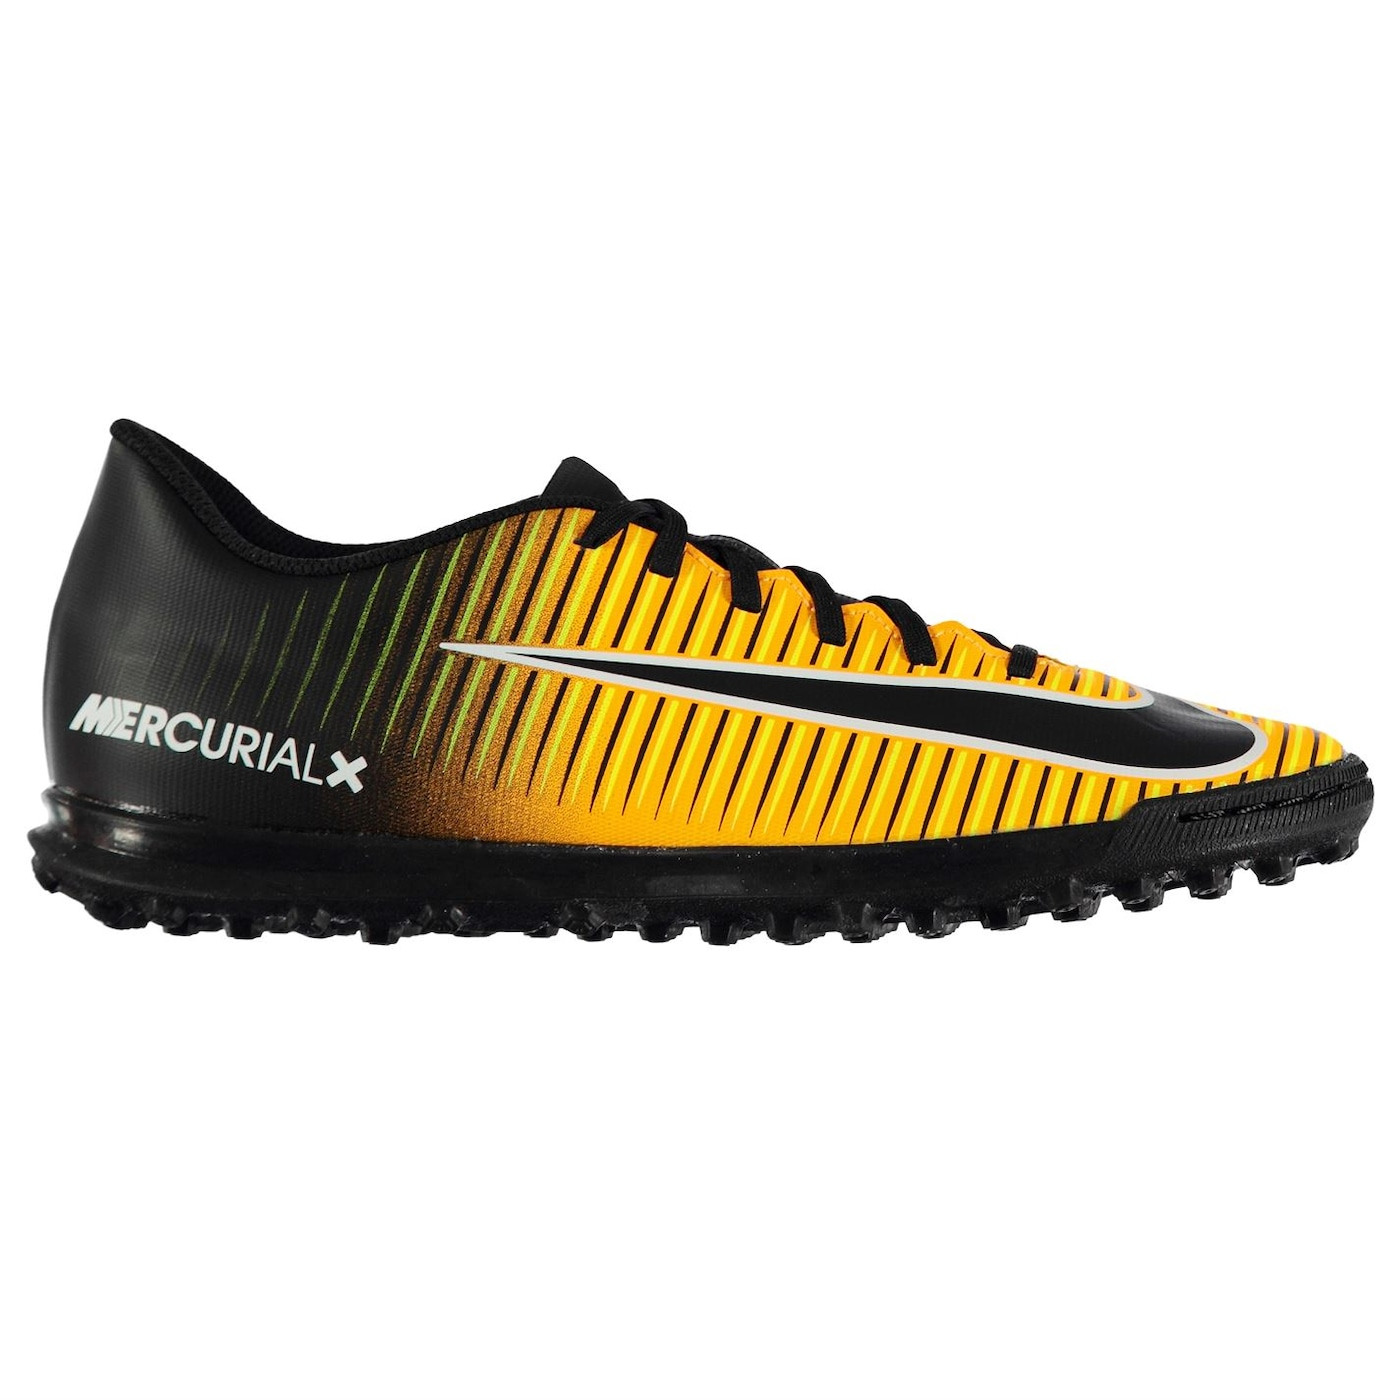 Nike Mercurial Vortex TF Football Boots Mens